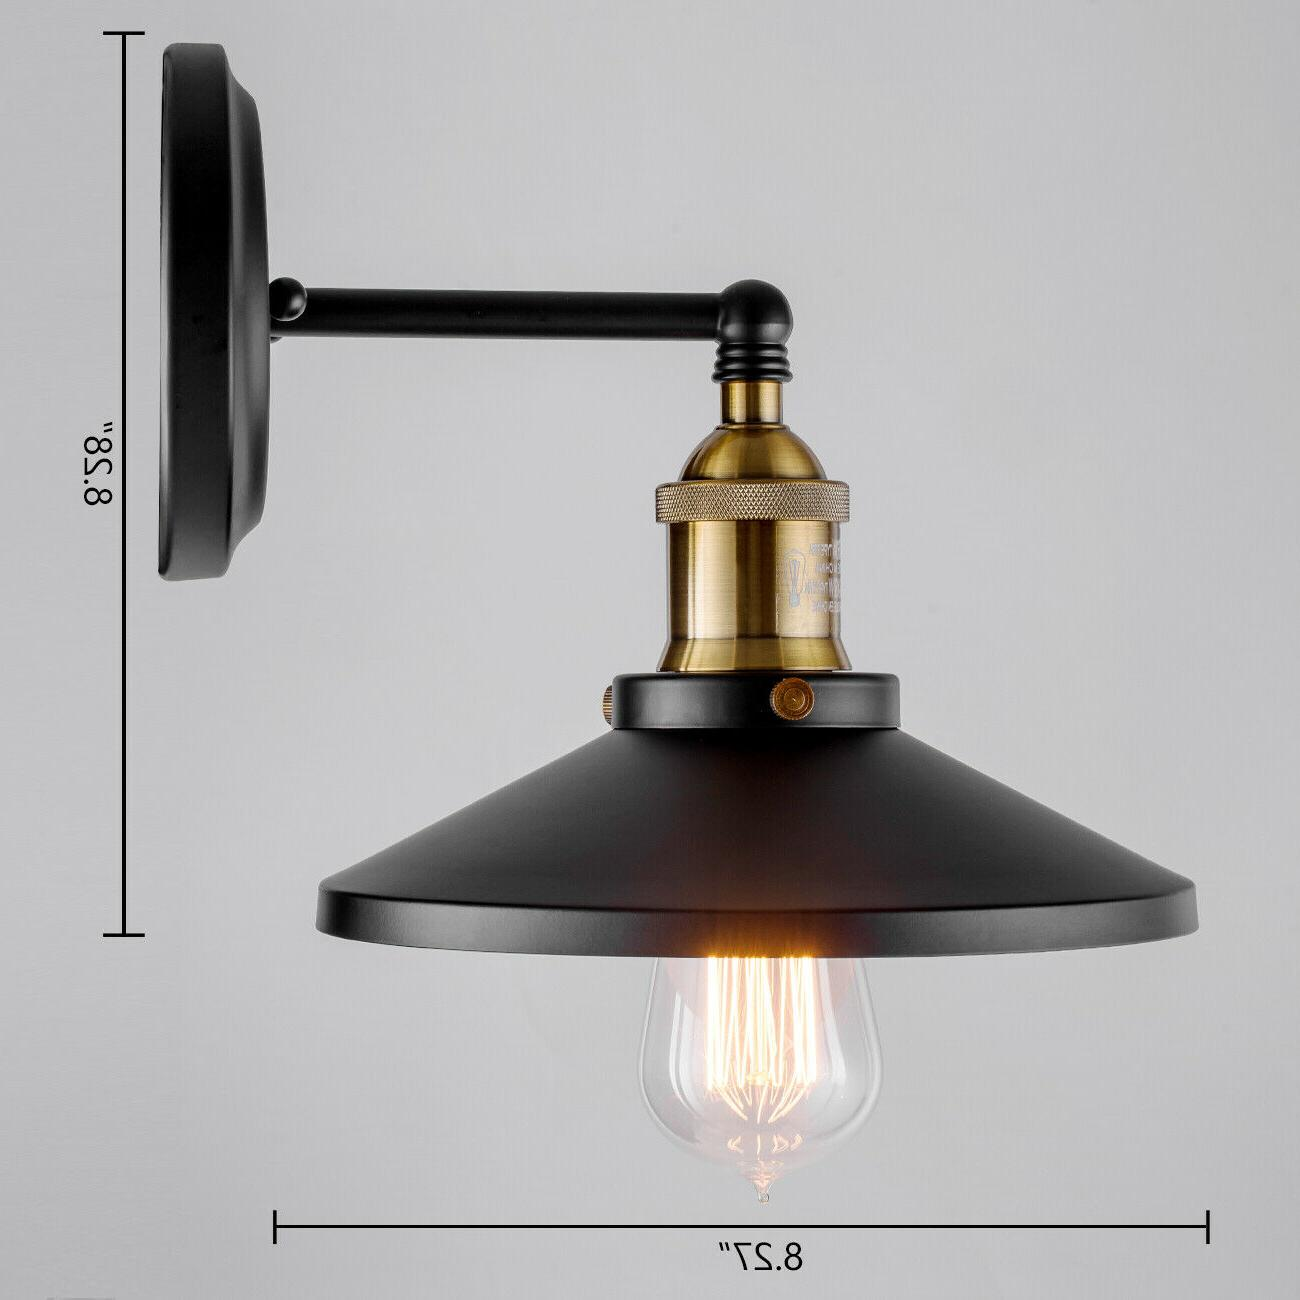 Black Wall Industrial Vintage Wall Porch Light